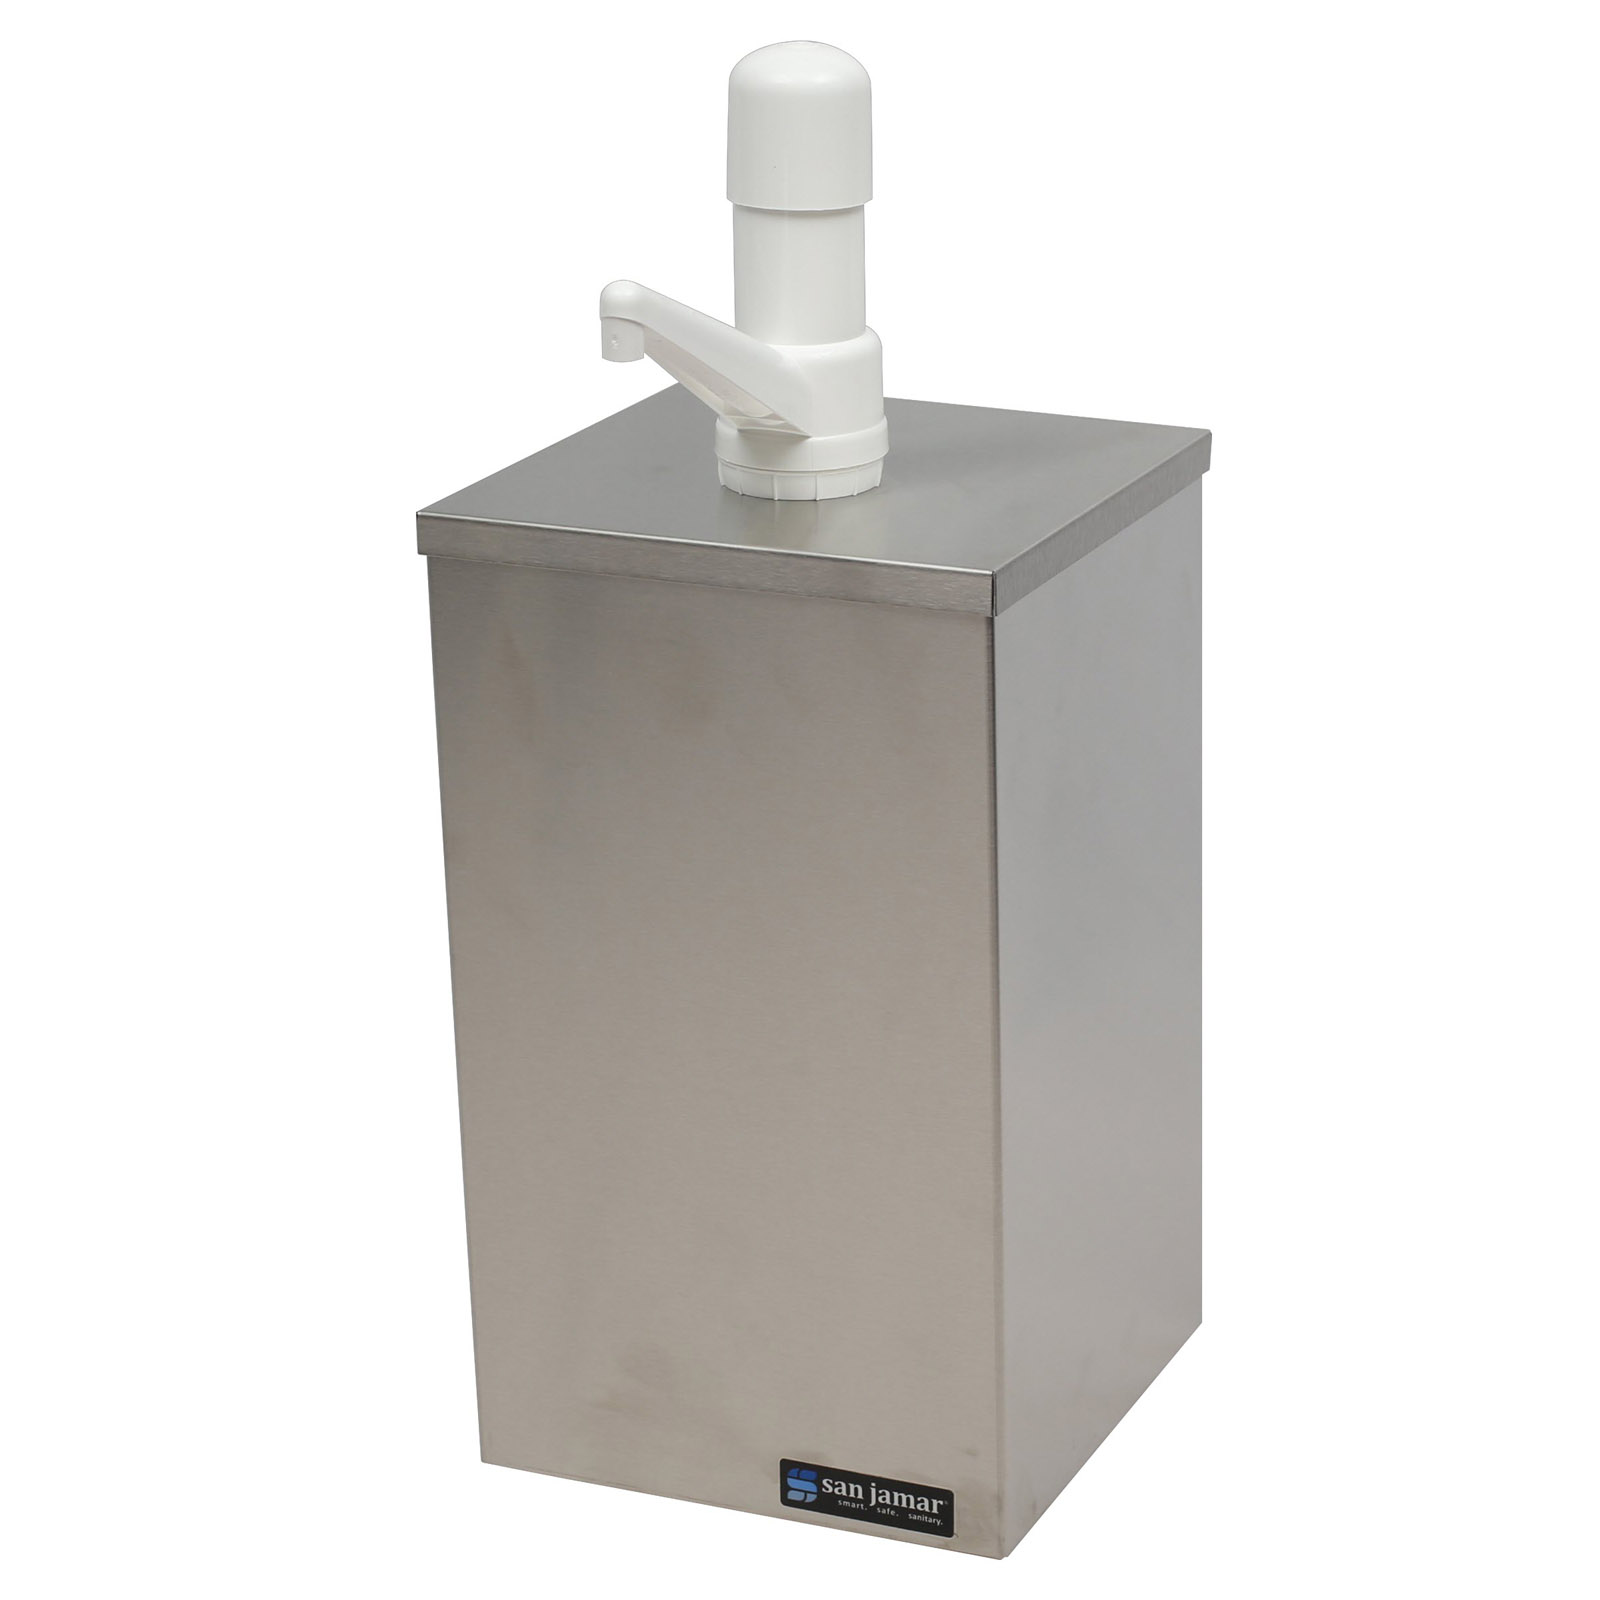 San Jamar P9810 condiment dispenser pump-style